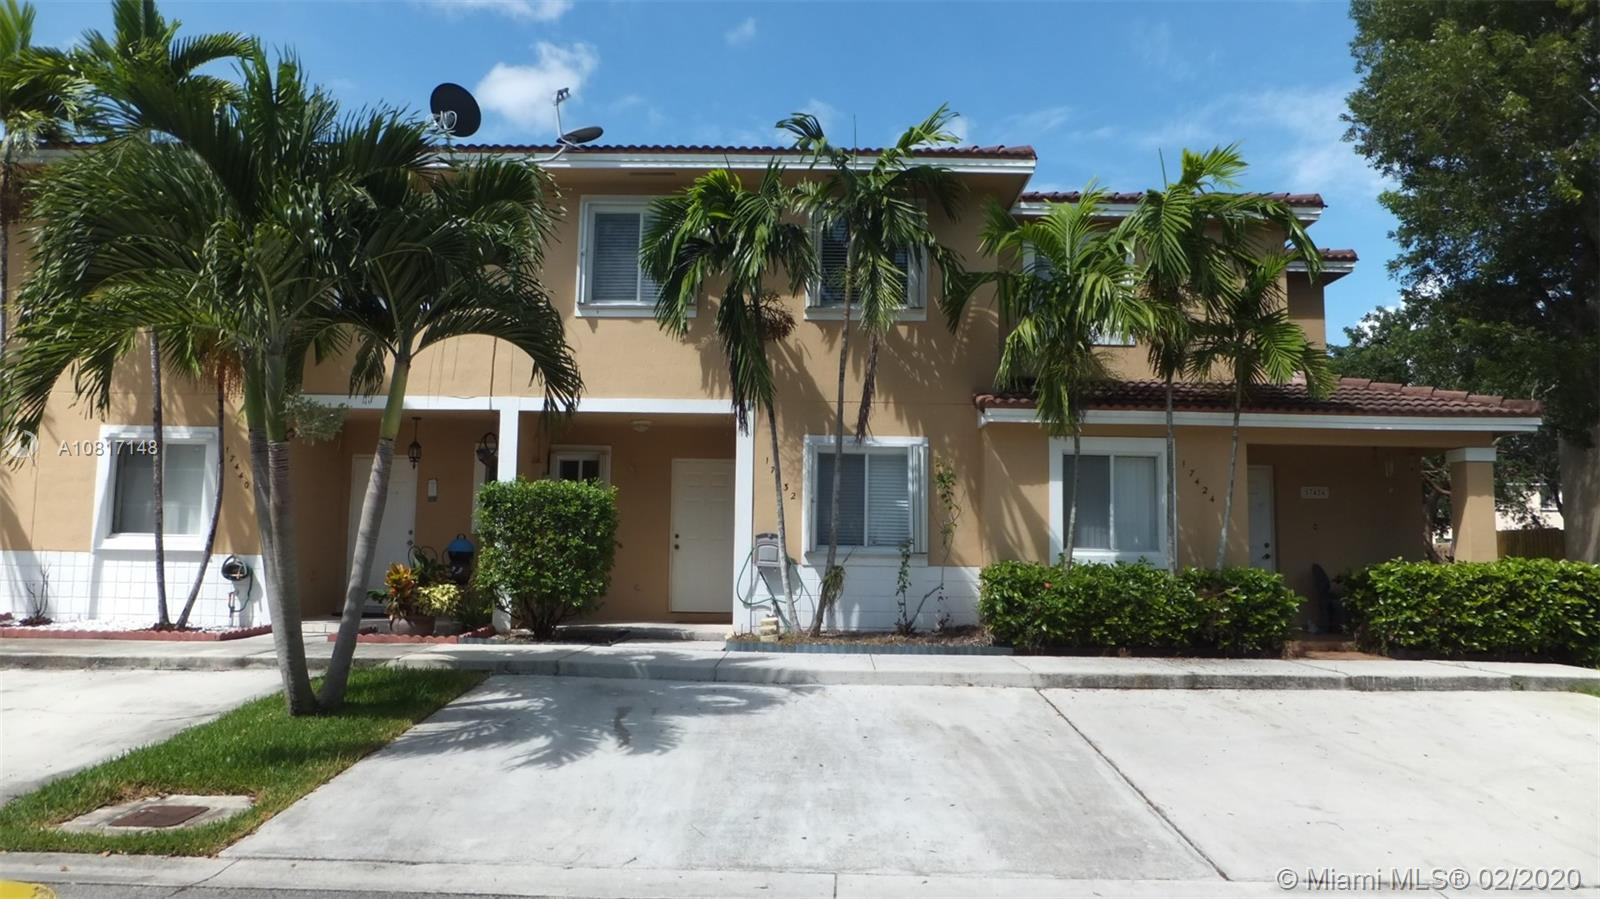 17432 SW 140th Court  For Sale A10817148, FL